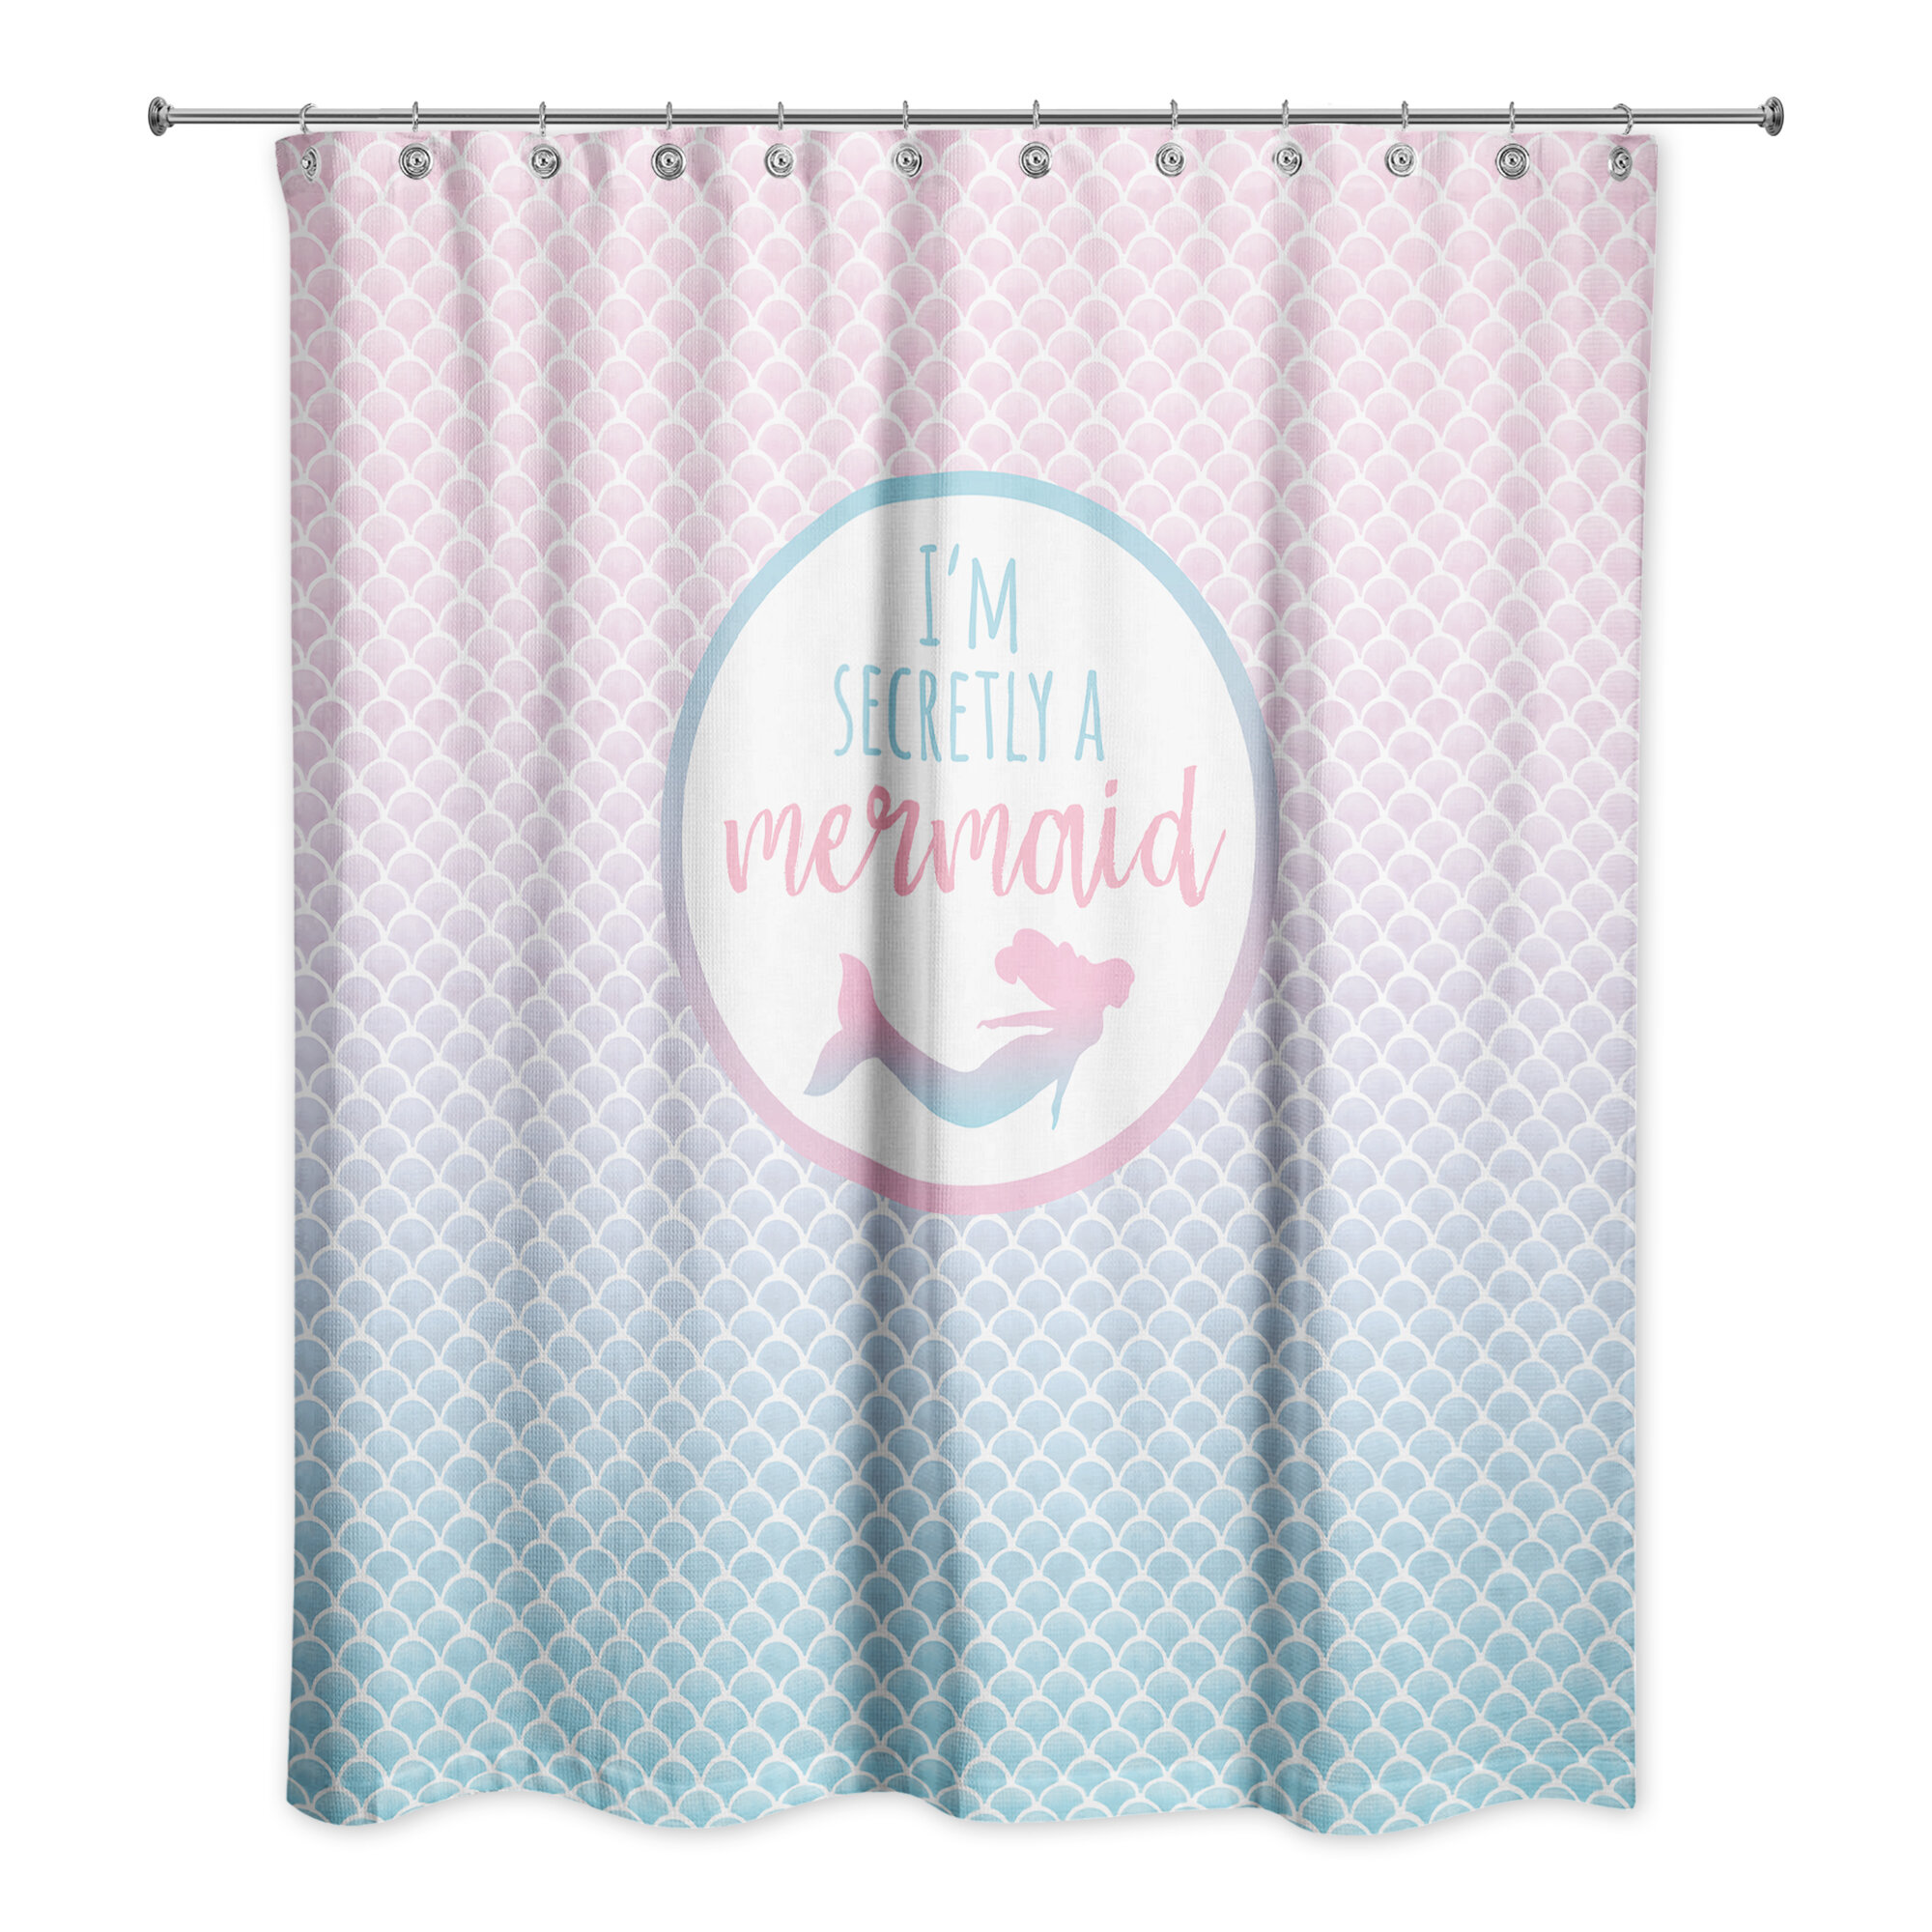 repellent gb polyester curtains white cm densely shower with art ikea textiles coating floral curtain en woven rugs products rosenfibbla pattern fabric water